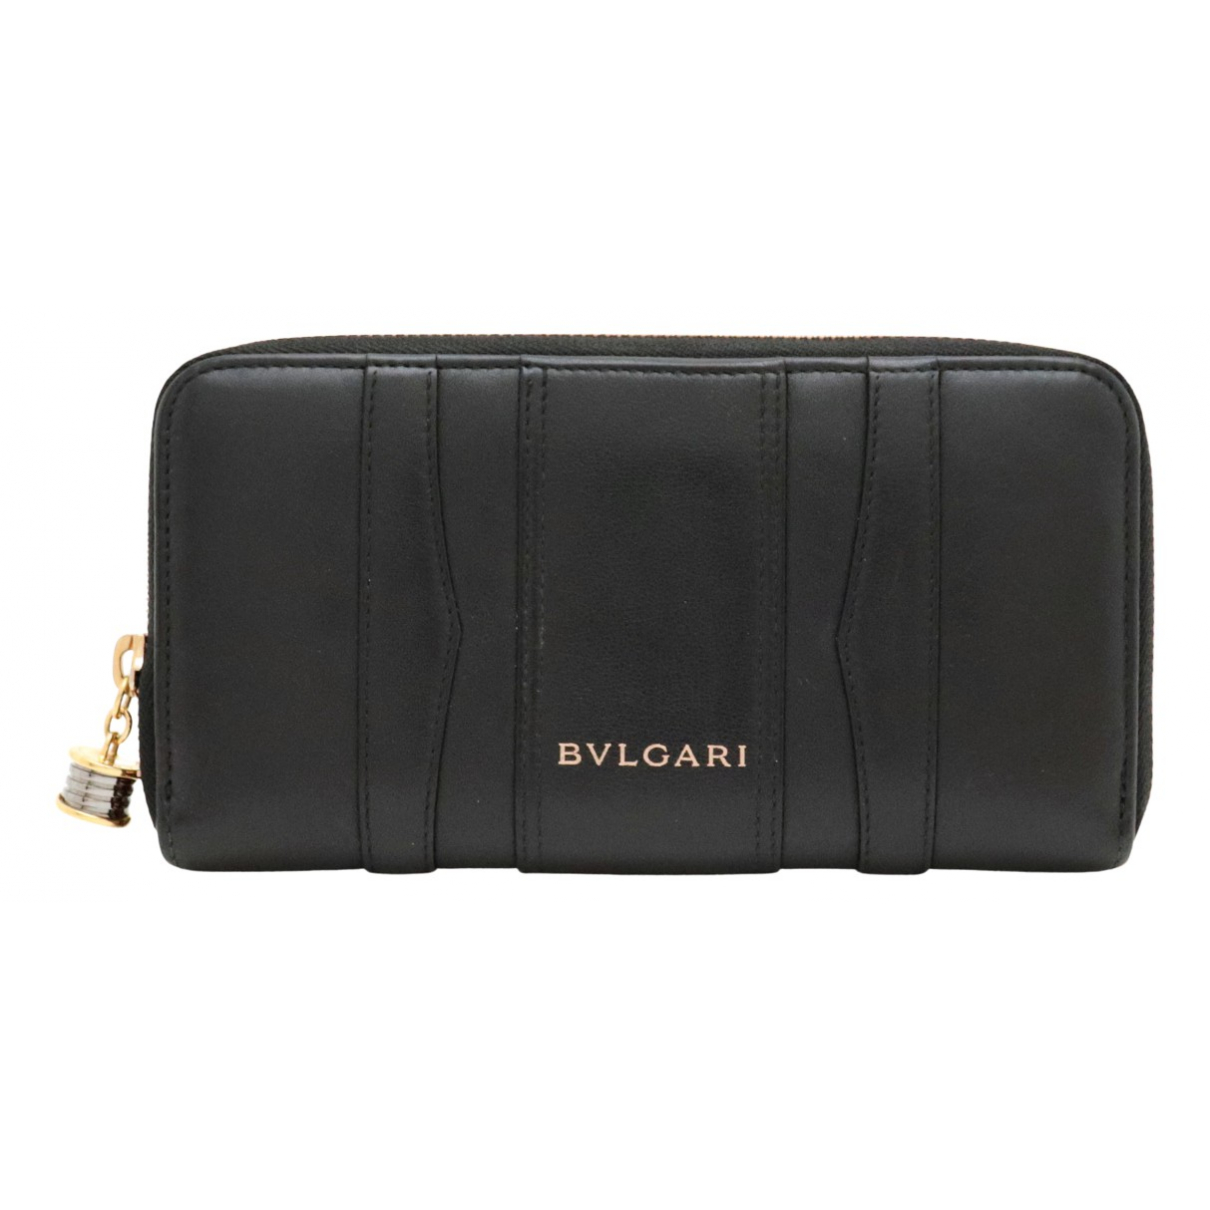 Bvlgari N Black Leather wallet for Women N